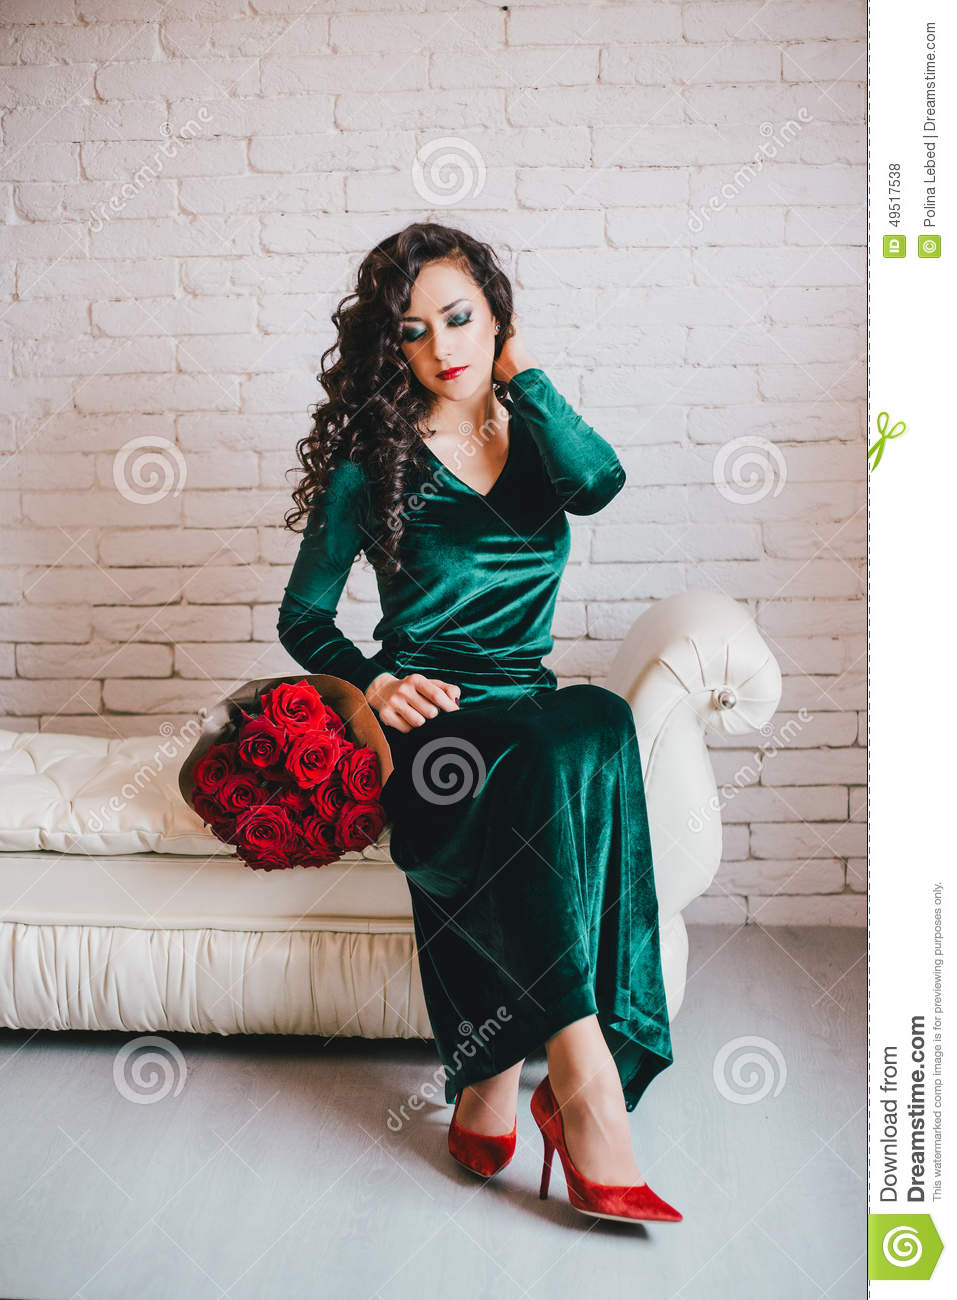 beautiful in a green dress and shoes with